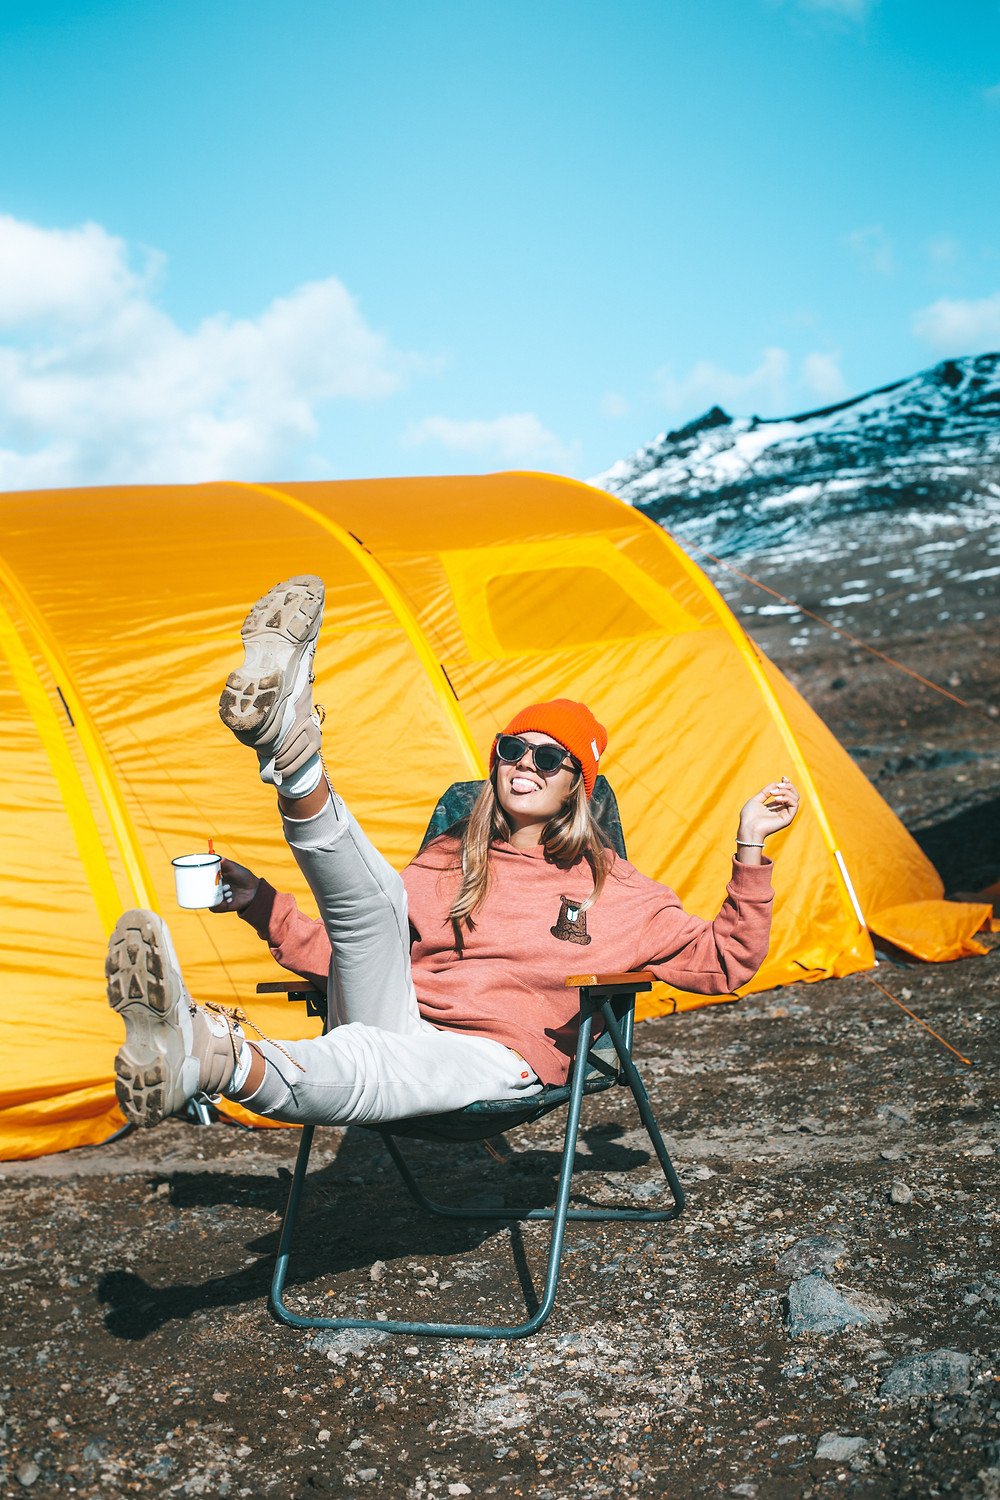 woman-leaning-back-in-camping-chair-and-smiling-with-tongue-out